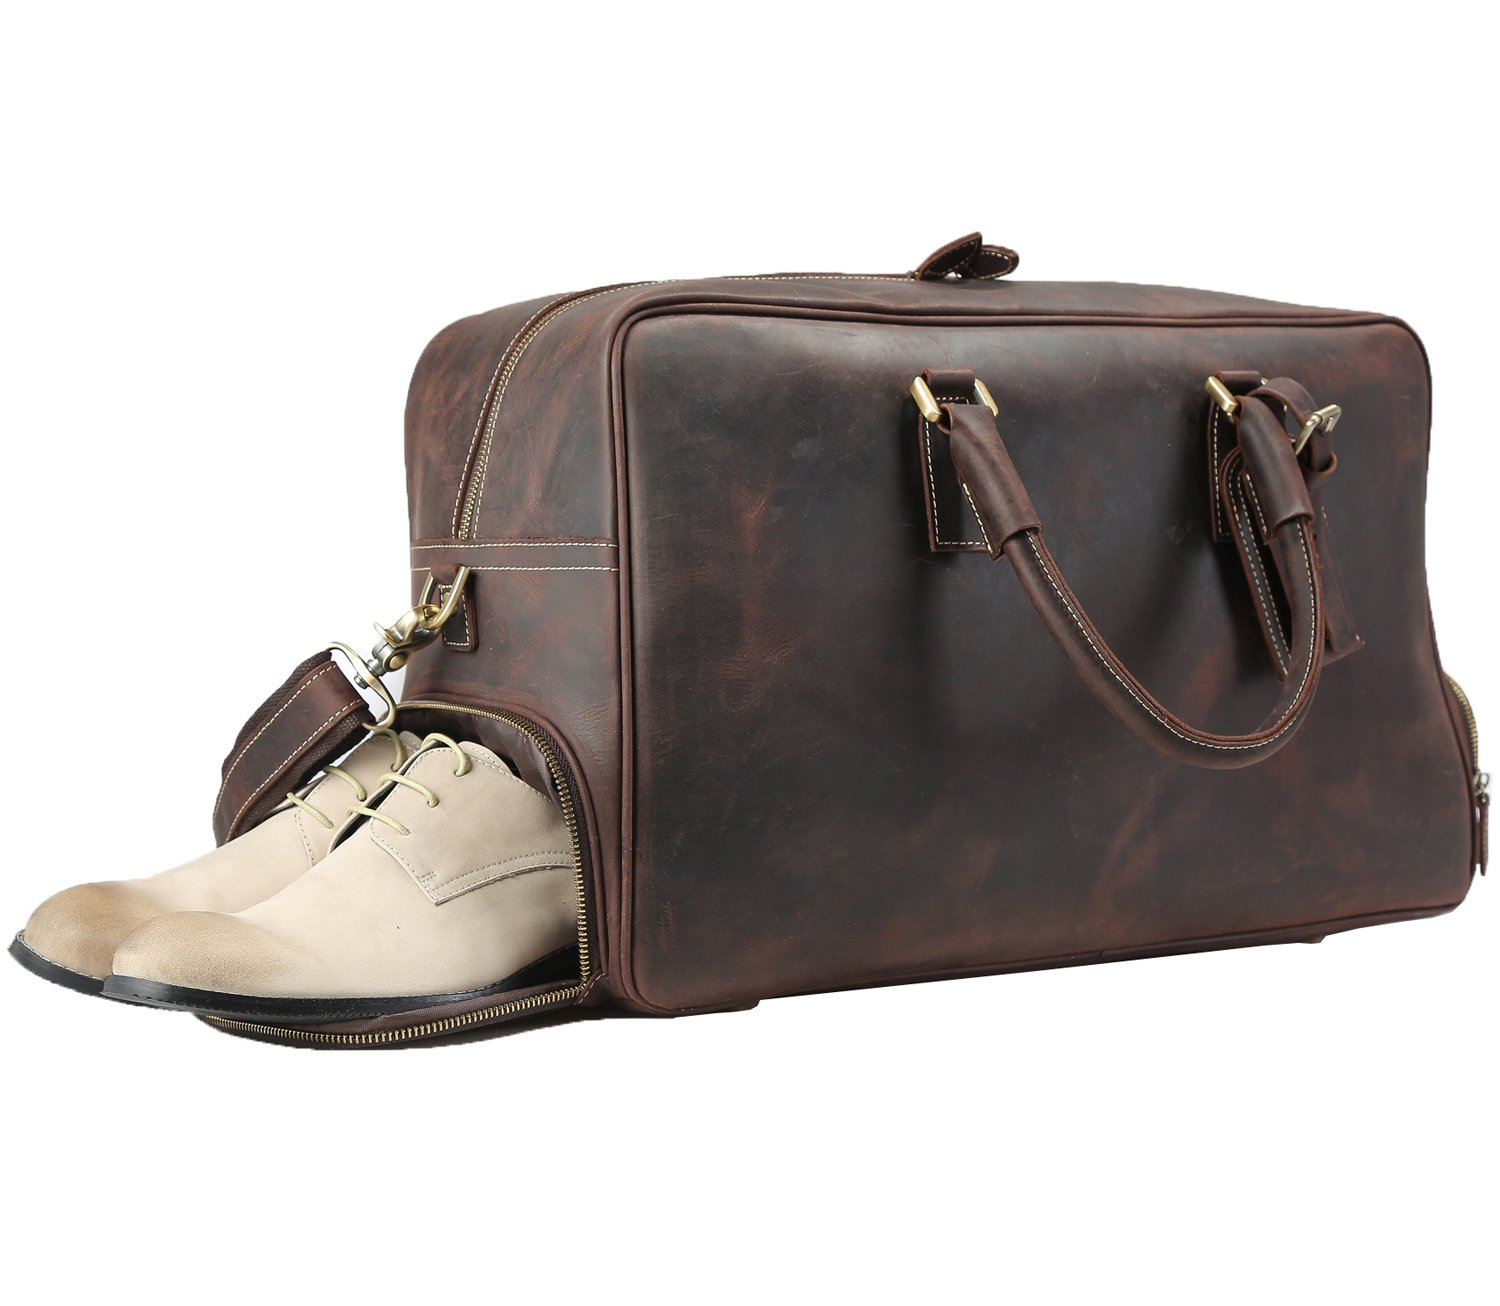 Texbo Cowhide Leather Weekend Travel Hiking Duffle Sport Bag With Shoes Storage 20'' by Texbo